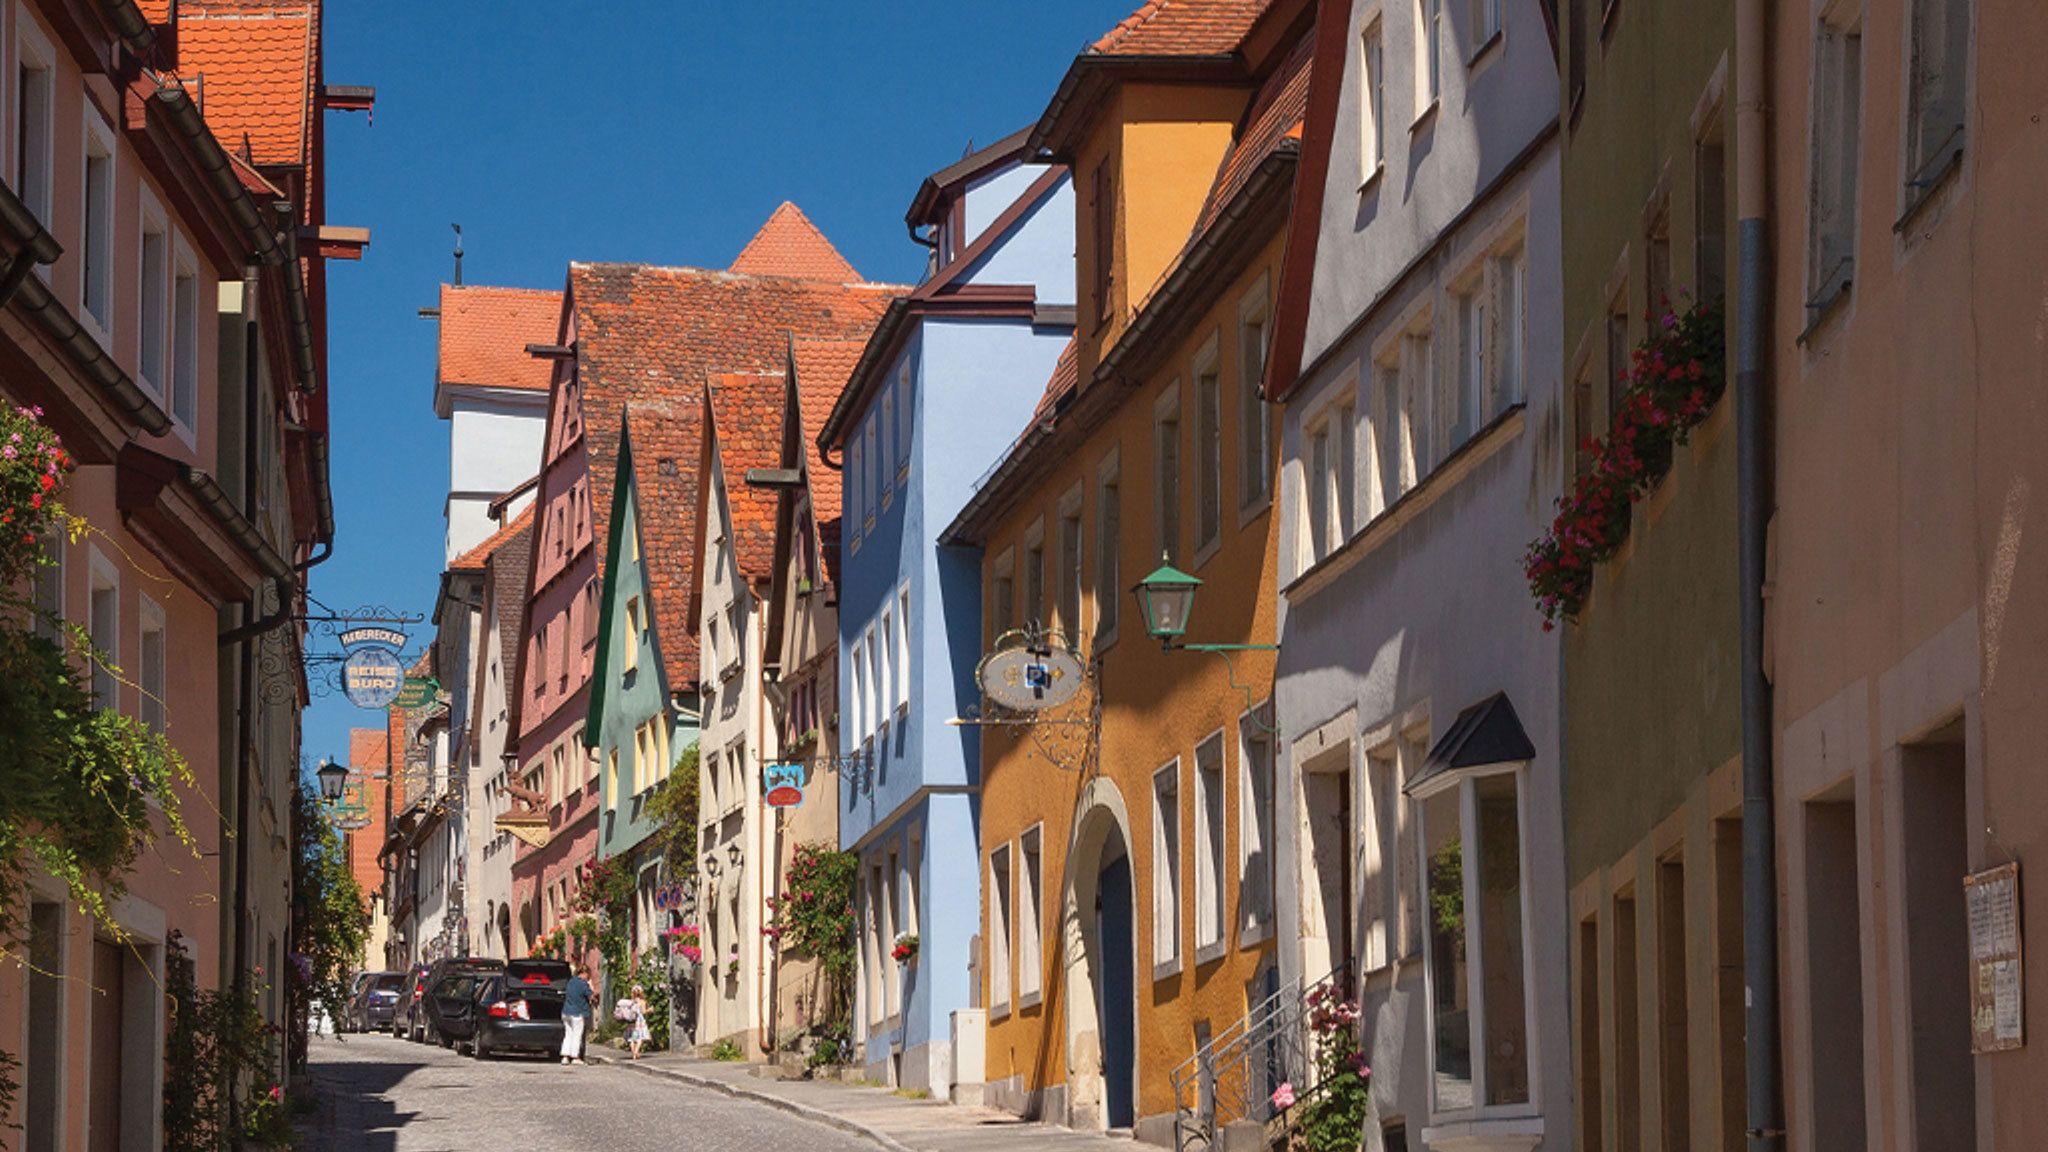 Cobbled streets of Rothenburg, Germany